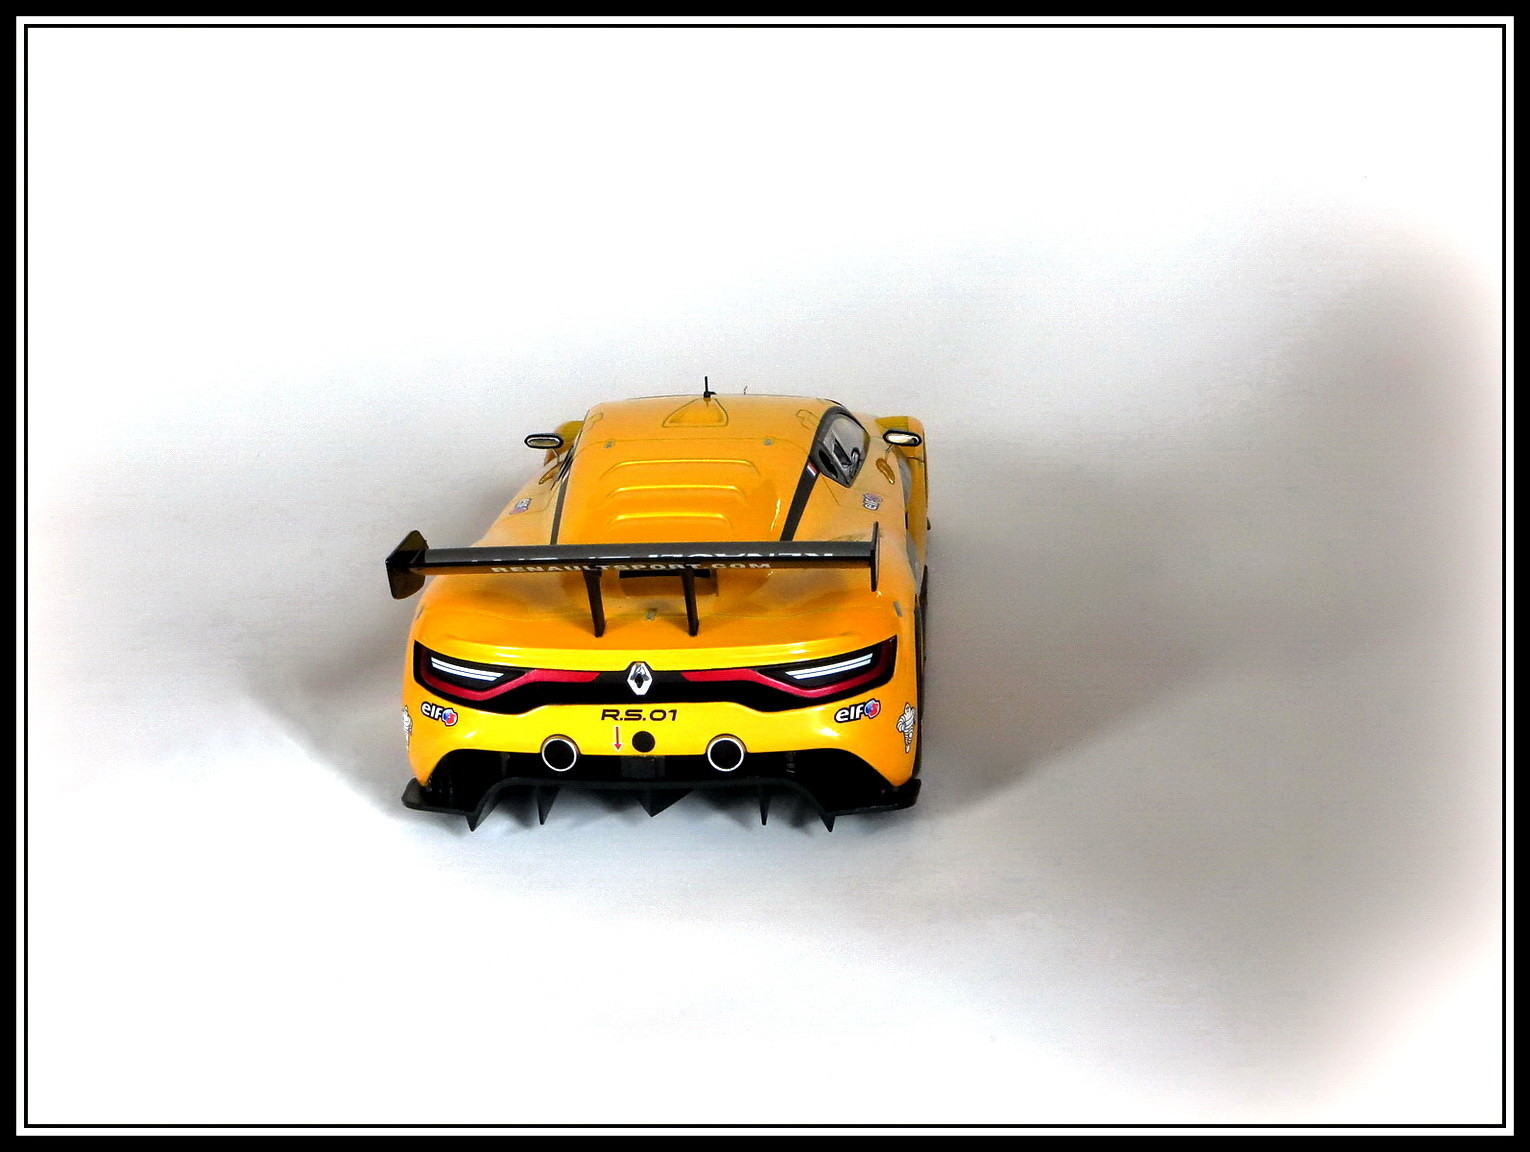 renault-rs 01-2015-012